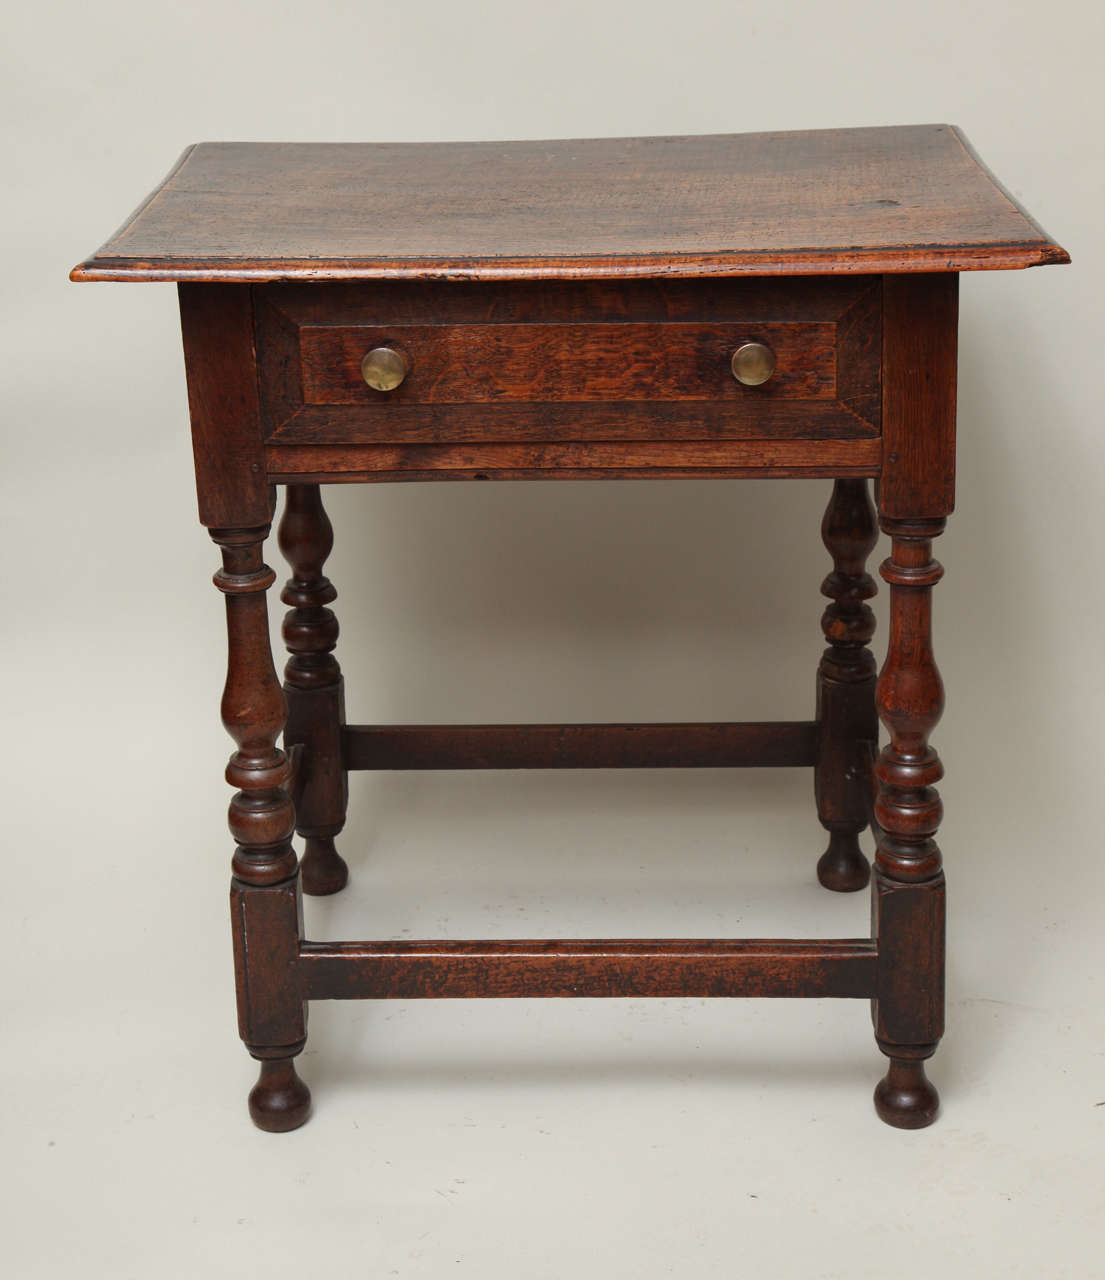 Very good late 17th century English ash and oak side table, the single plank tiger ash top with thumb molded edge, over single drawer with chamfered edge, over boldly turned balustrade legs with beaded edge and original bun feet, joined by beaded